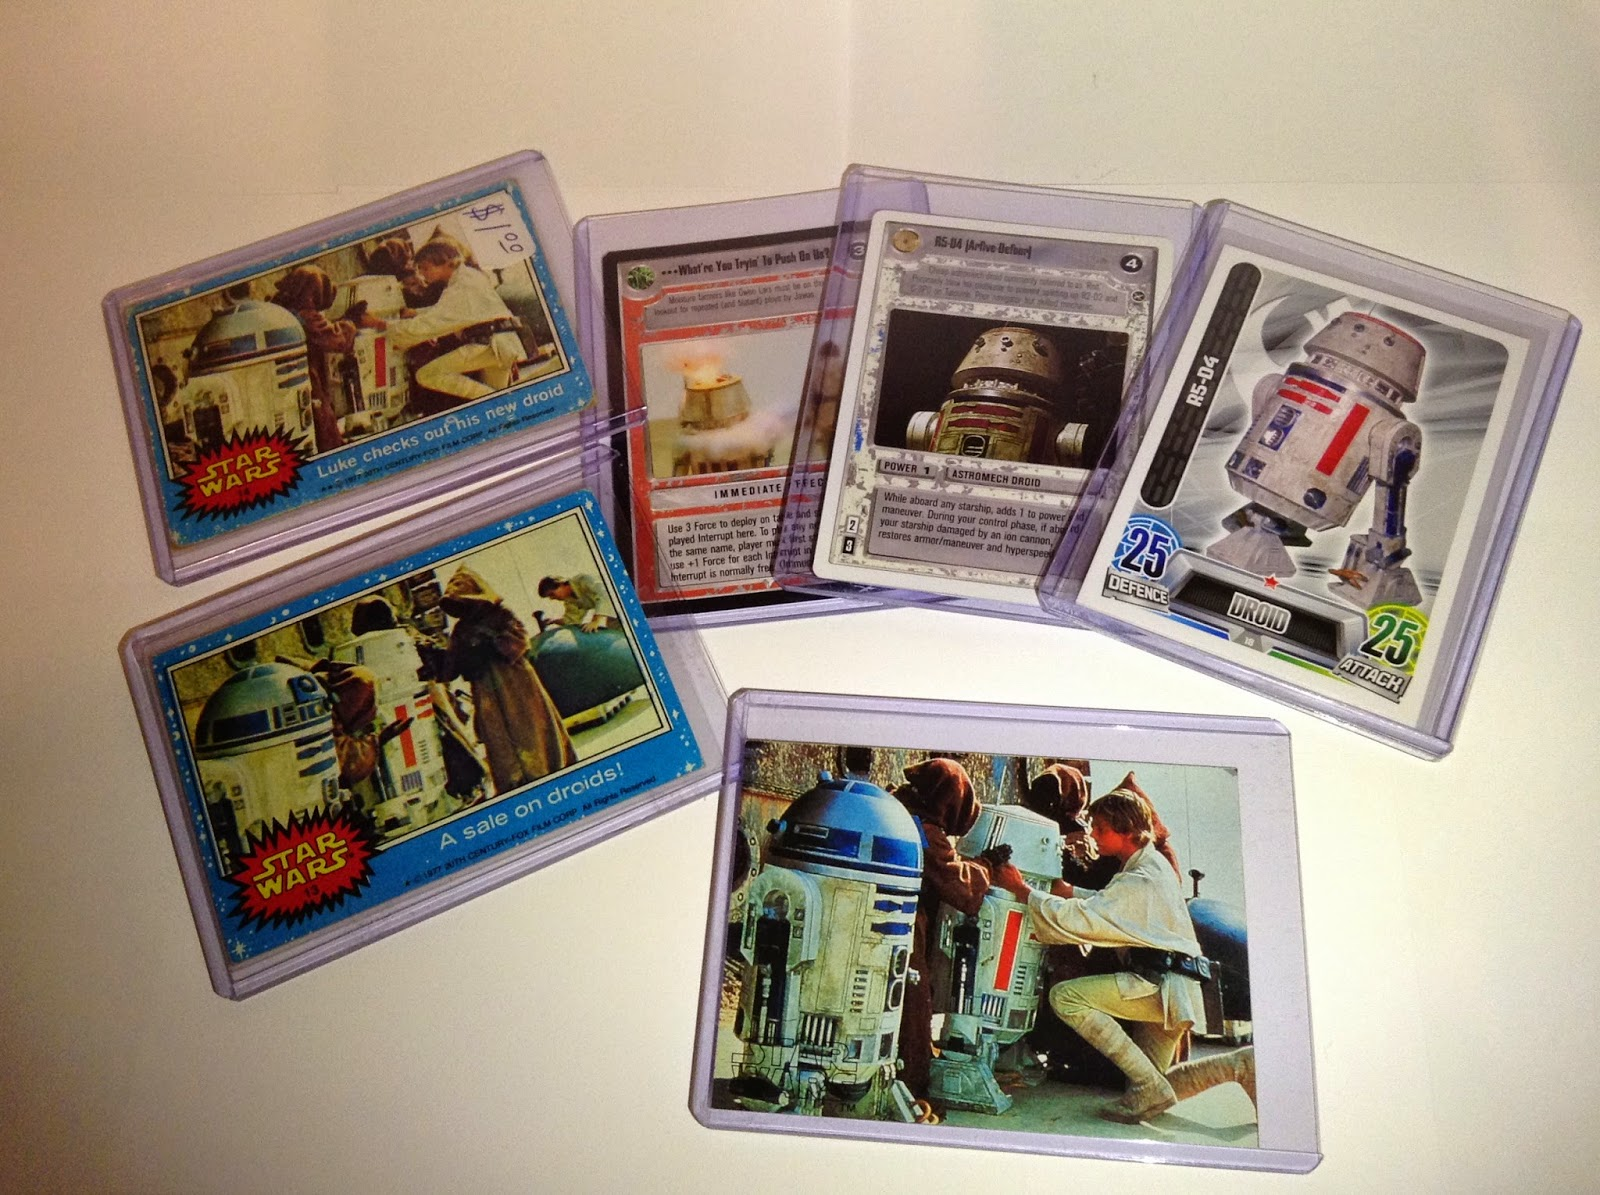 R5-D4 trading cards